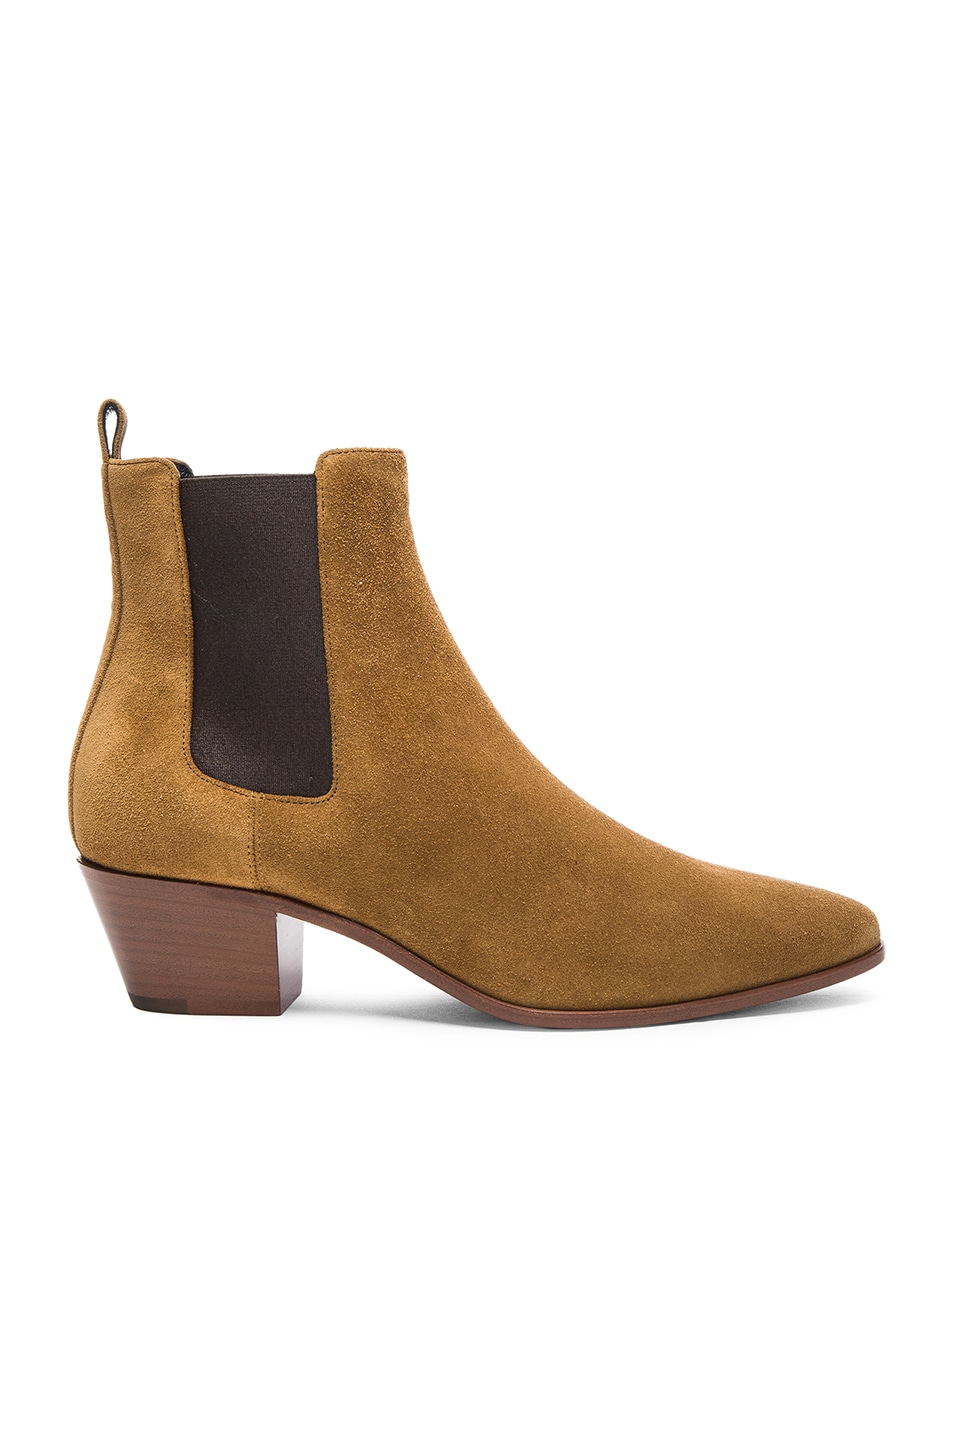 Image 1 of Saint Laurent Suede Rock Chelsea Boots in Tan 6a5834664